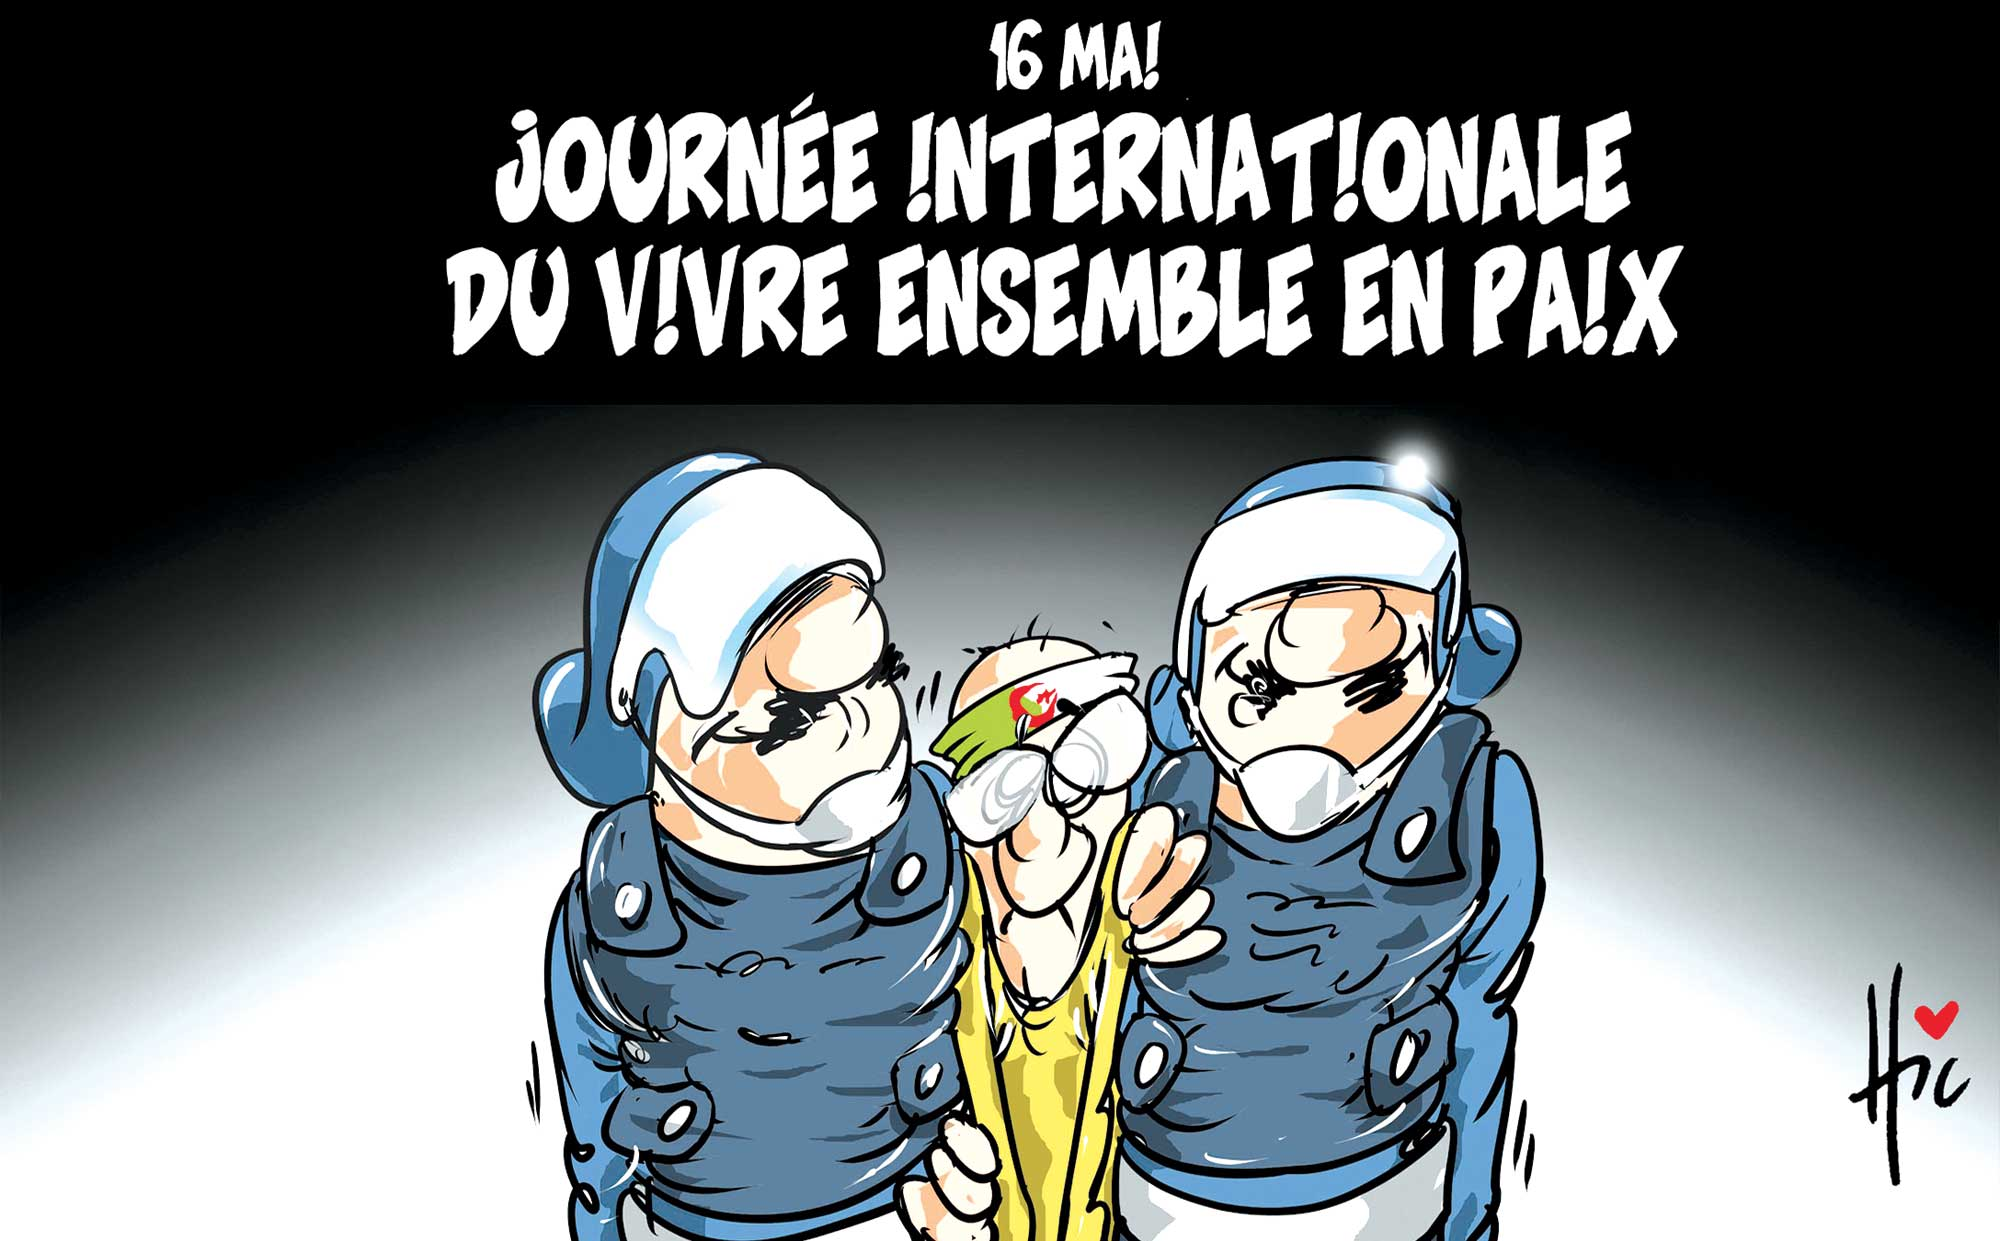 16 mai journée internationale du vivre ensemble en paix - hirak - Gagdz.com